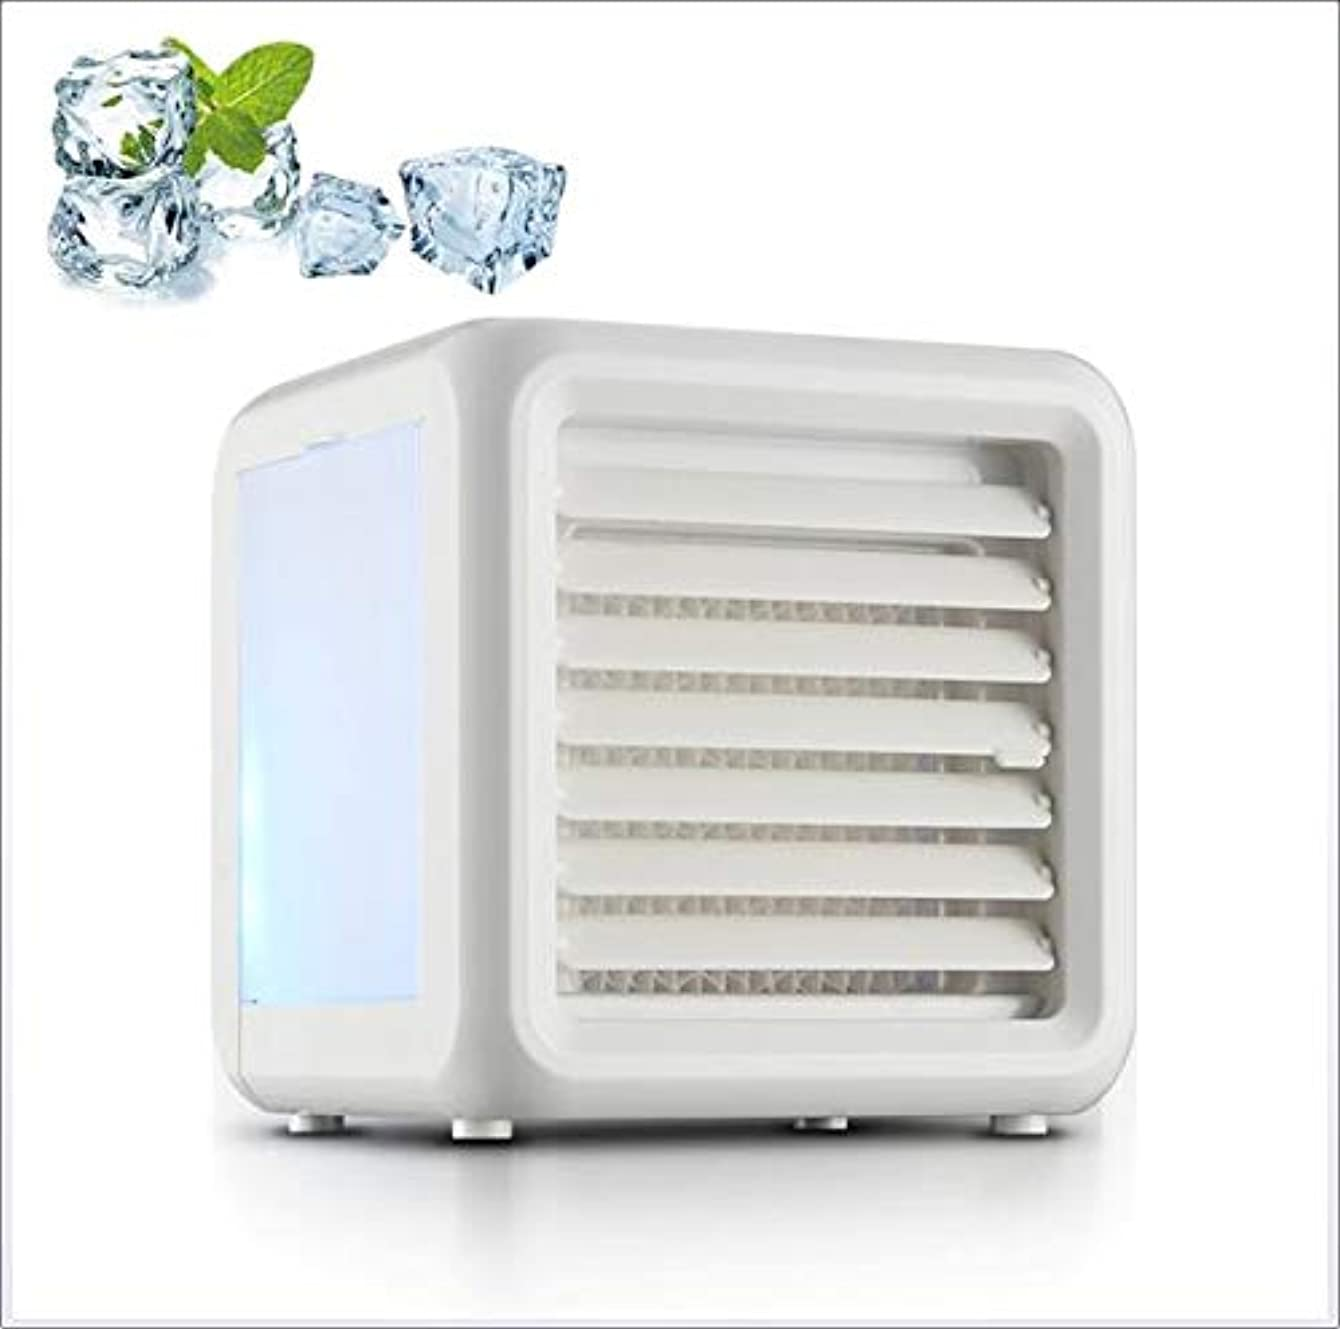 LBJ Portable Air Conditioner Chiller, Personal Air Cooler, USB Mini Air Conditioner Fan, Evaporative Air Cooler, Desktop Cooling Fan